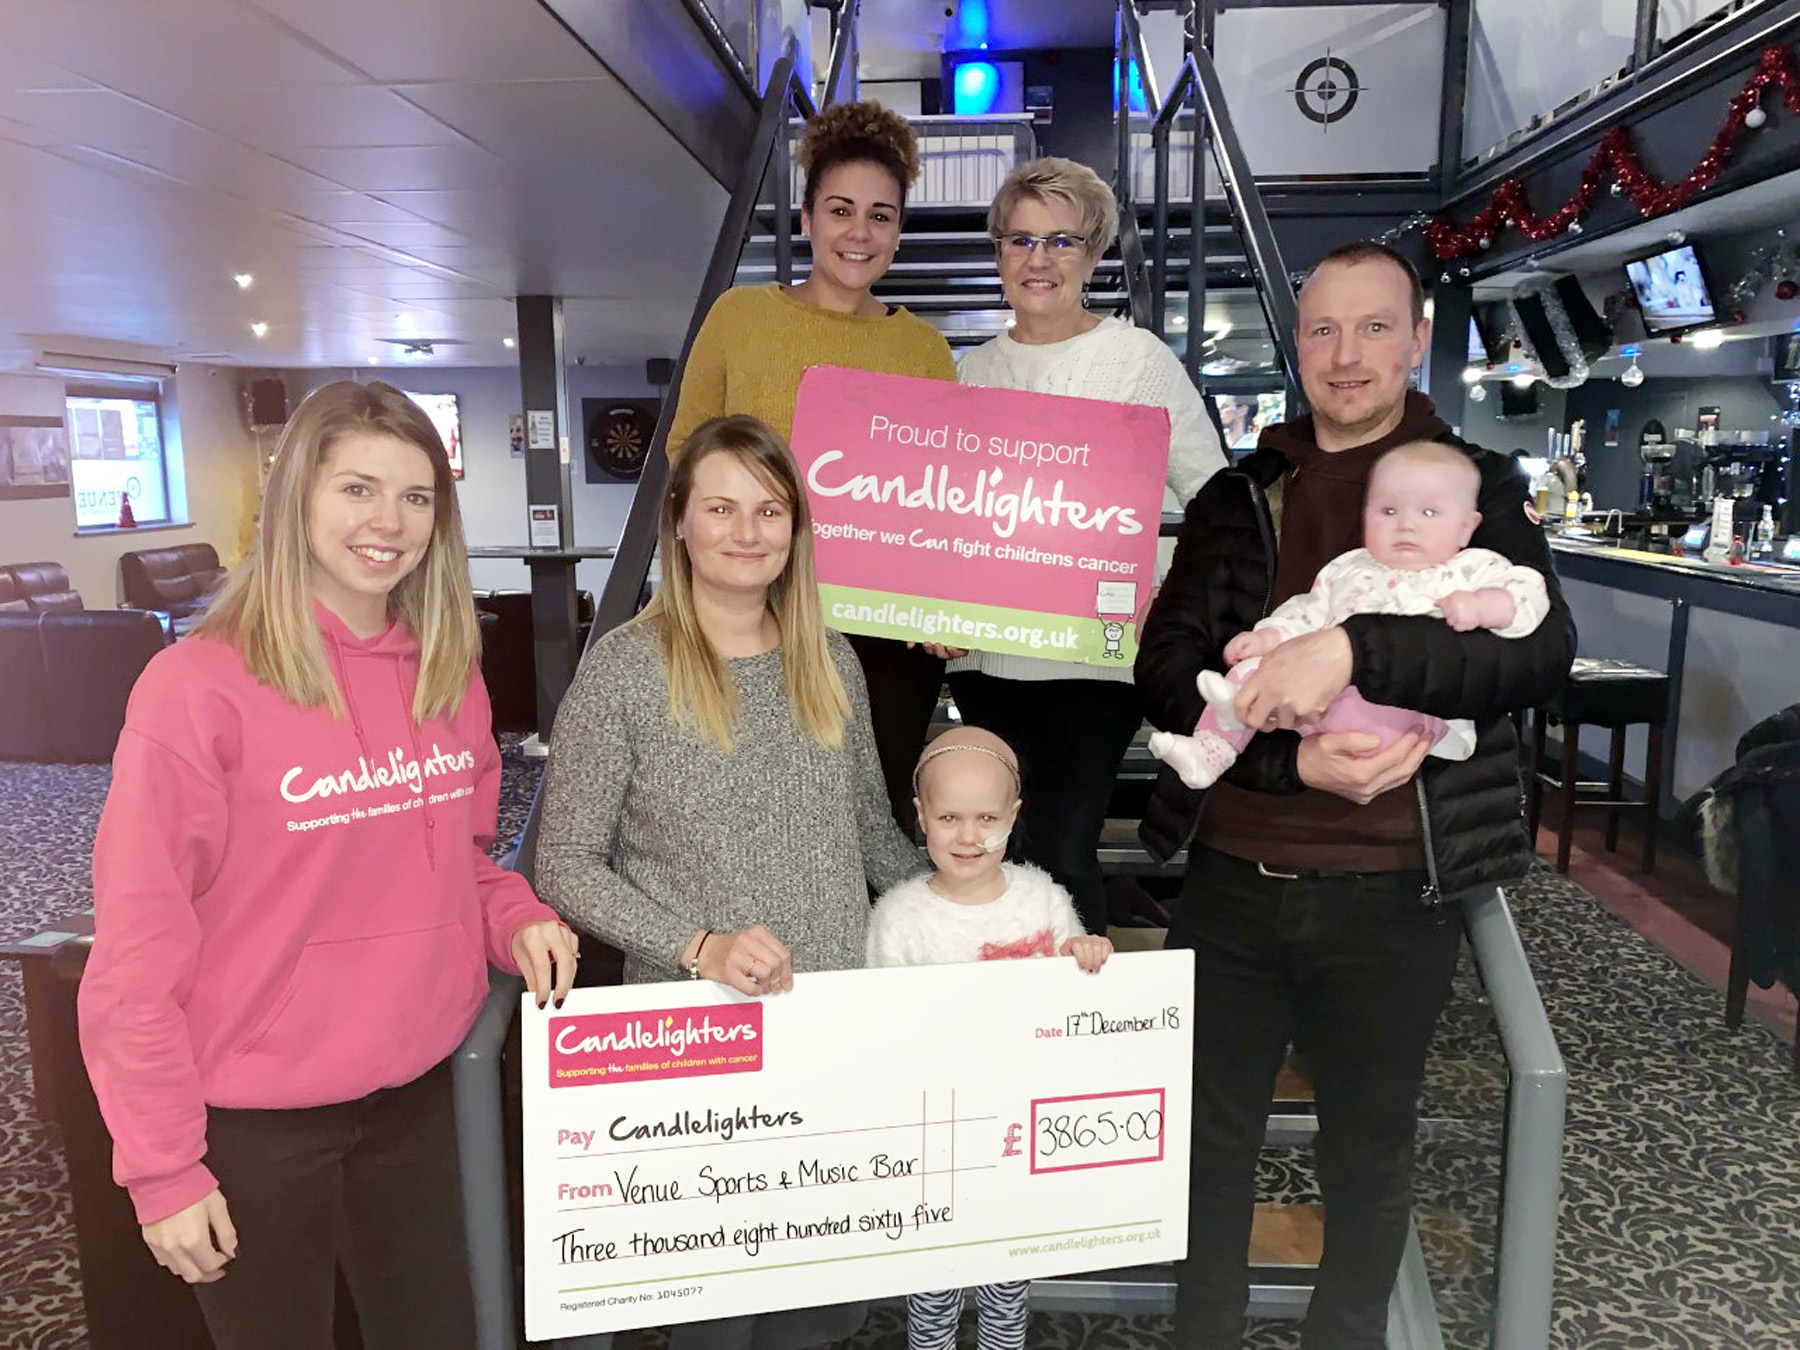 Pictured at Venue Sports and Music Bar are representatives of the family, Candlelighters and charity event organisers – from left, Gina Trotter, Leah Pompey, Sharron Pompey, Rachel Hodgkiss, Maddie Jameson, Liam Jameson and Amy Jameson.